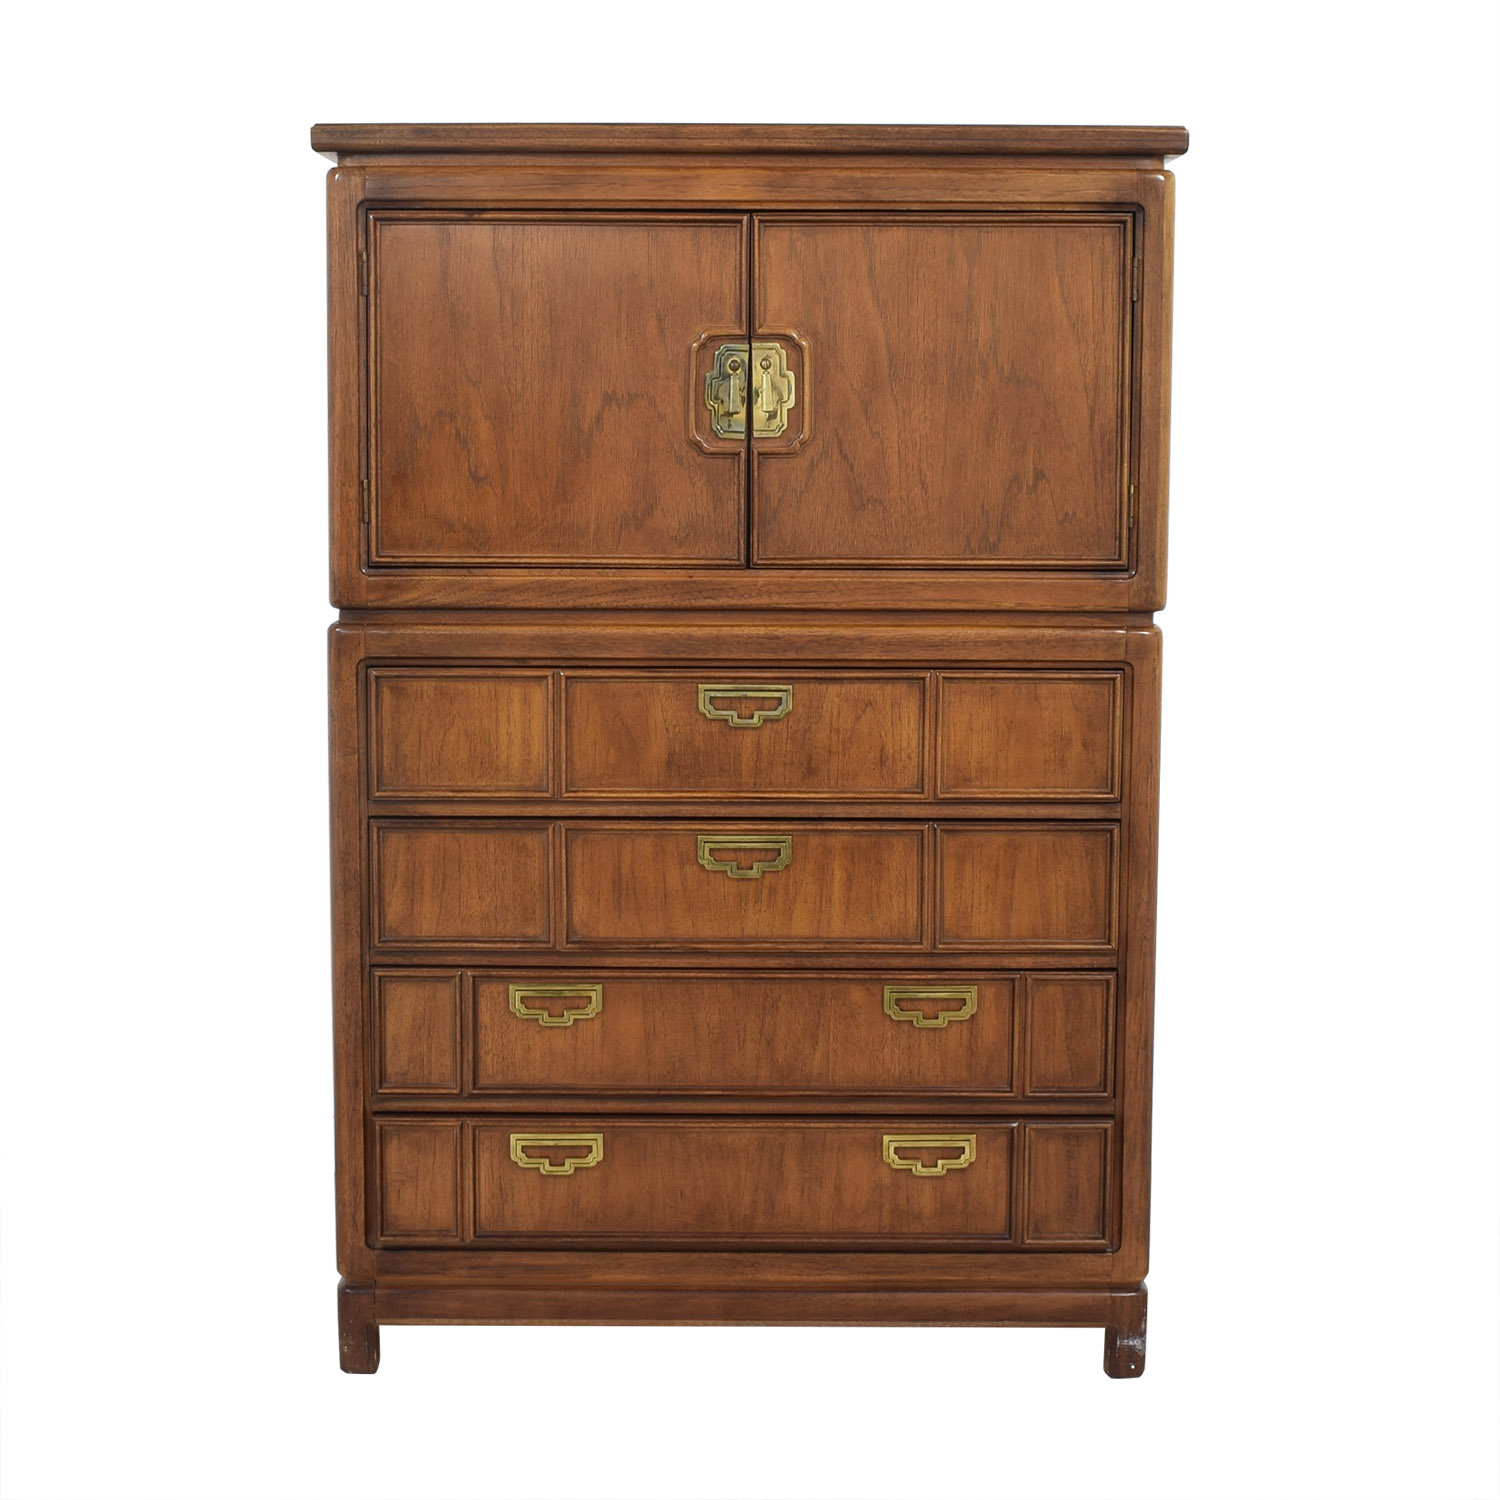 Thomasville Thomasville Armoire with Drawers Wardrobes & Armoires